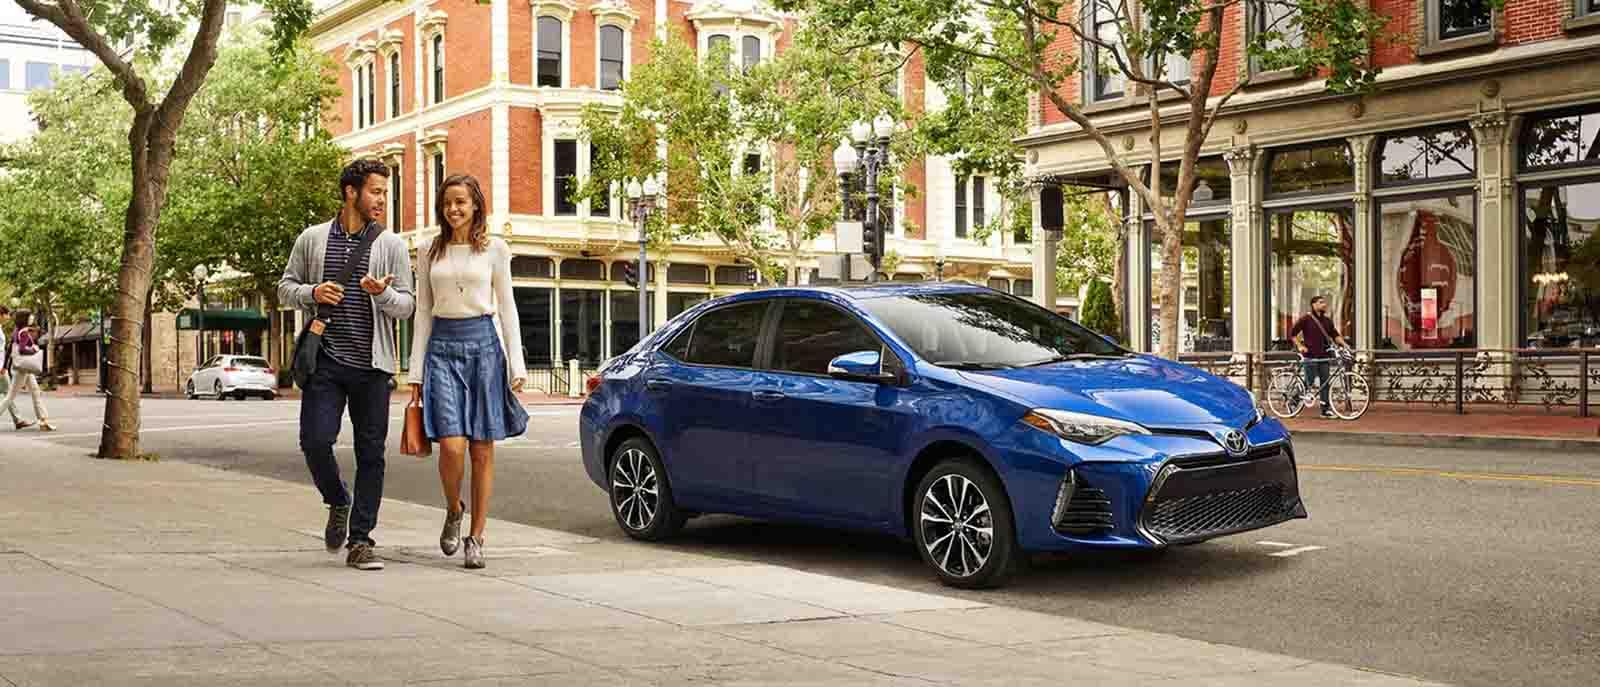 Leasing vs. Financing Toyota